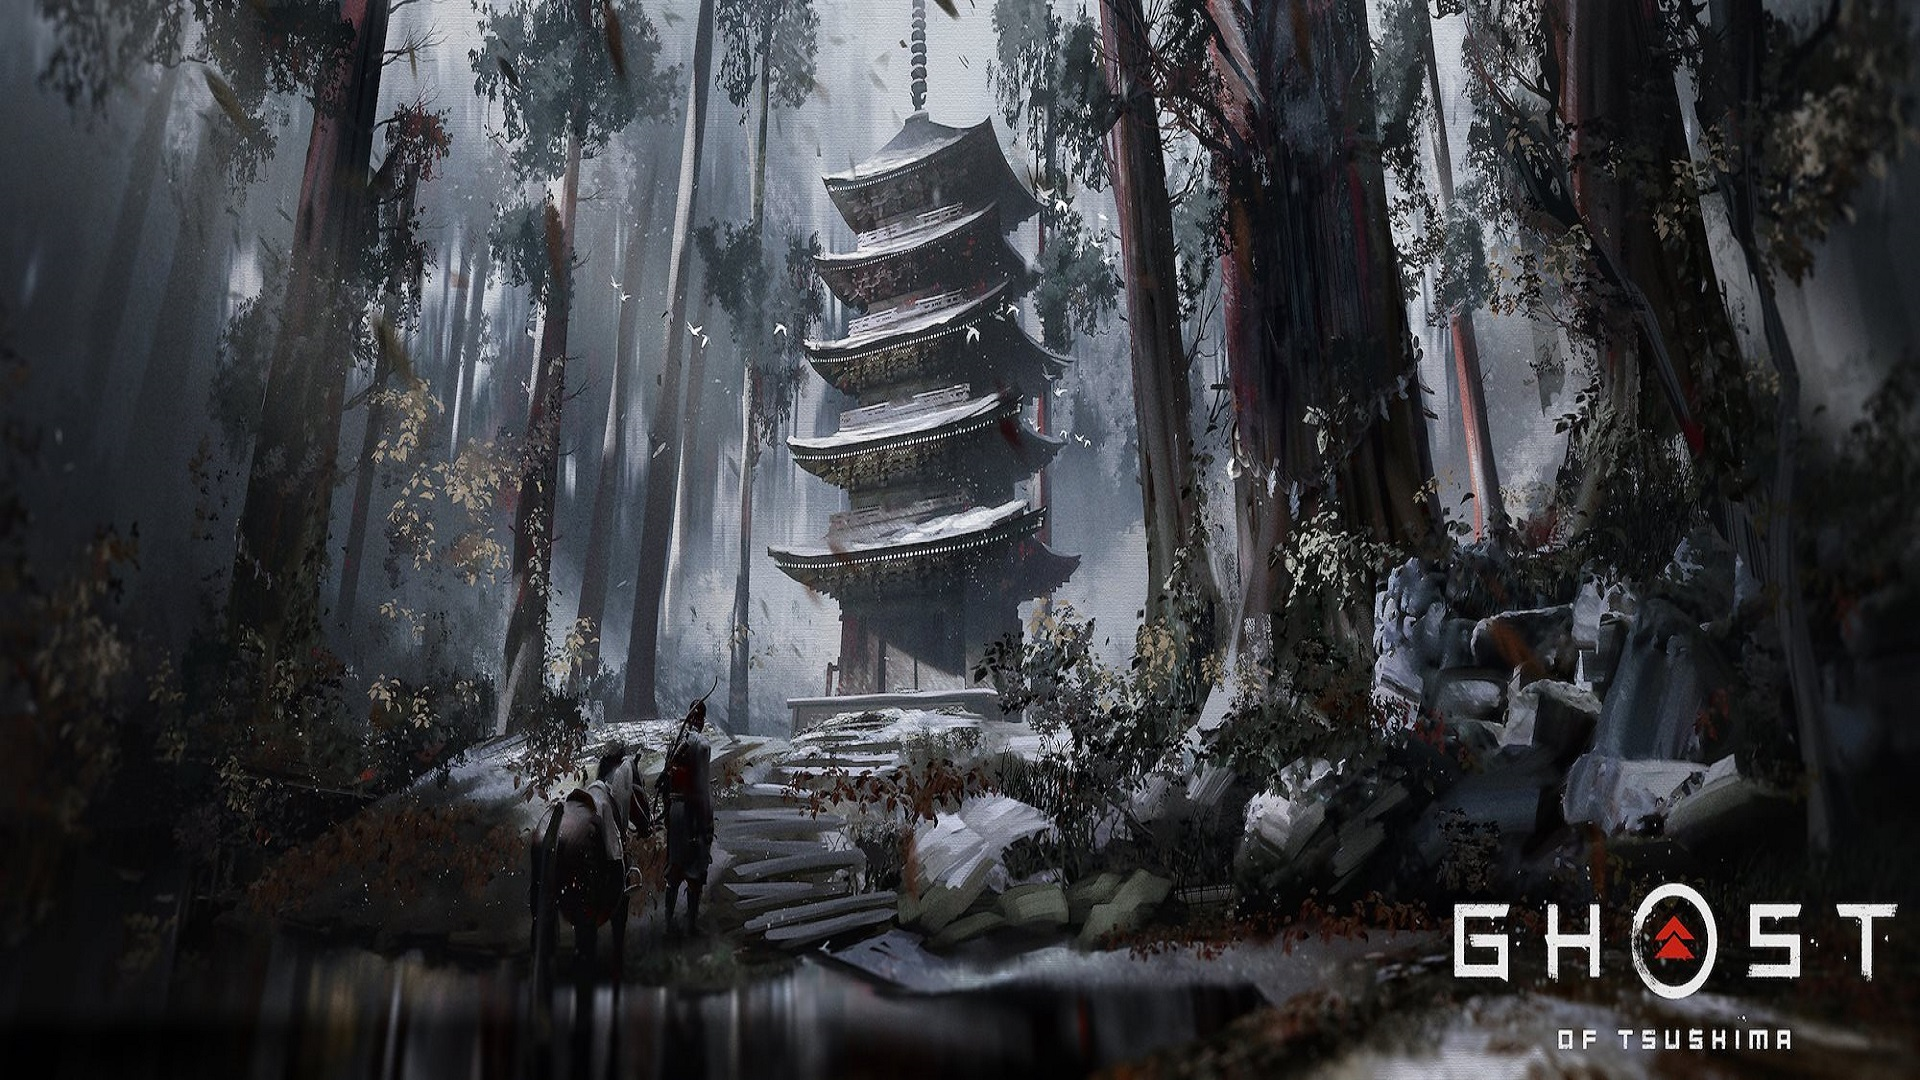 ghost of tsushima - photo #18